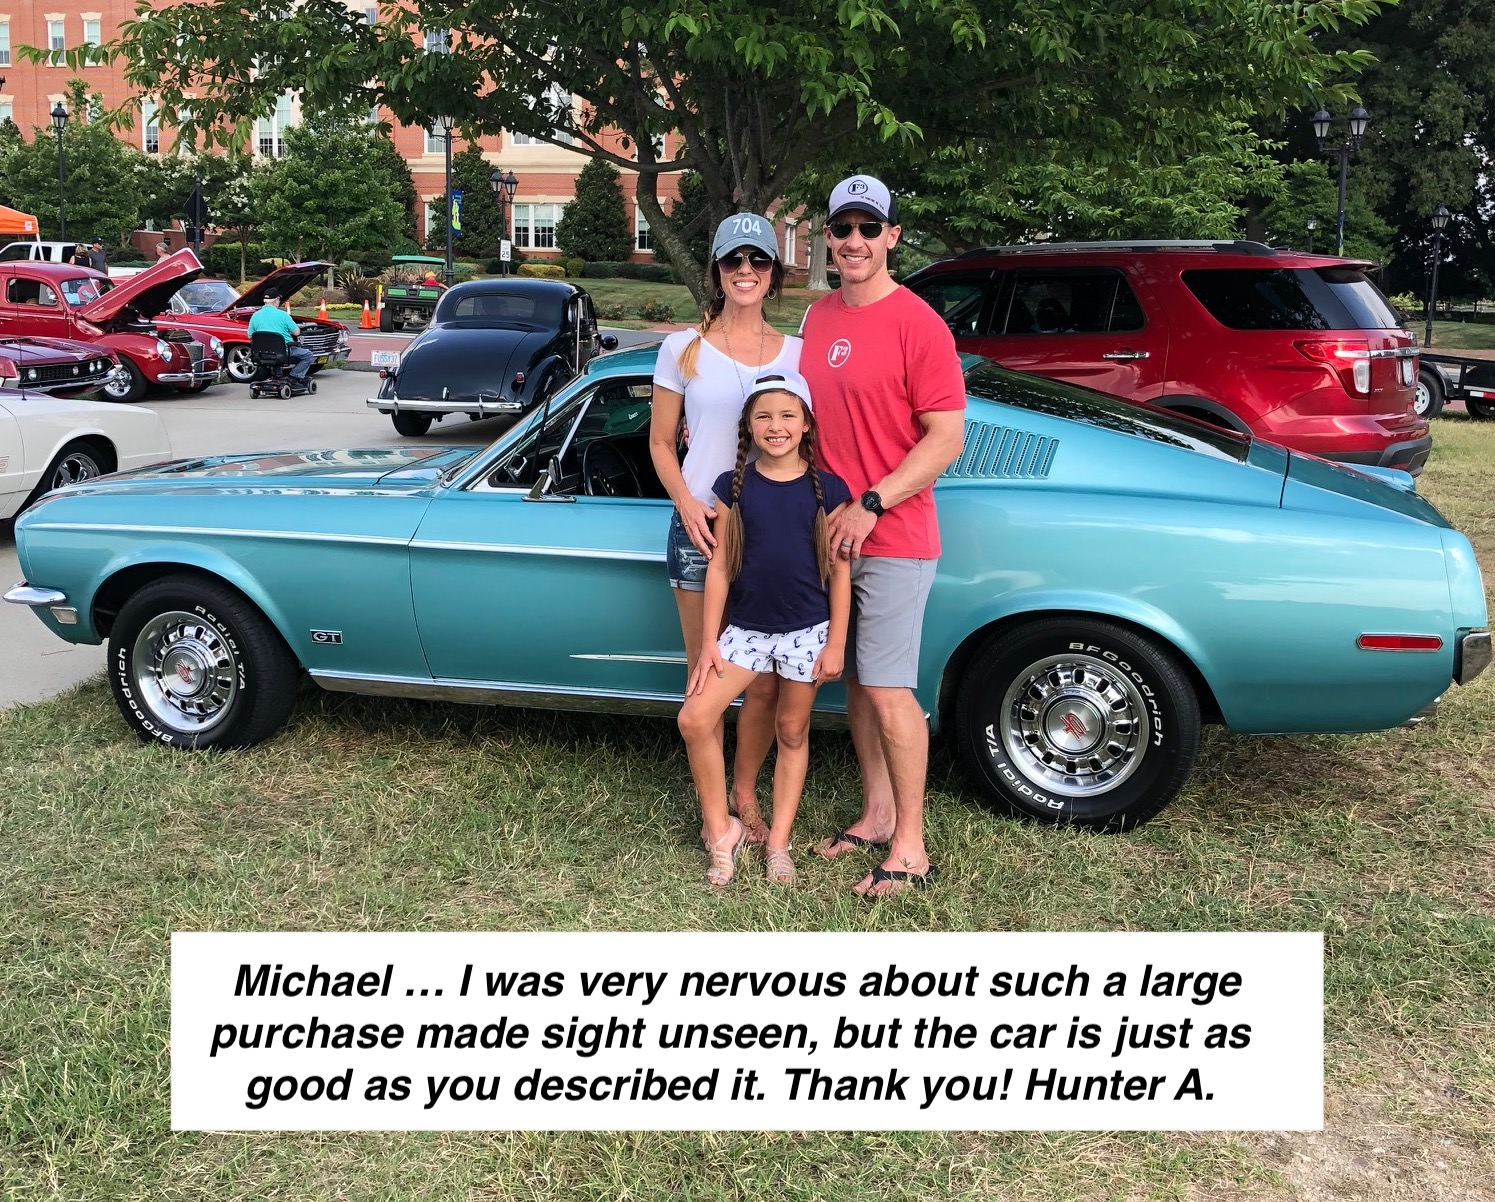 1968 Mustang Buyer feedback Brittany Blue